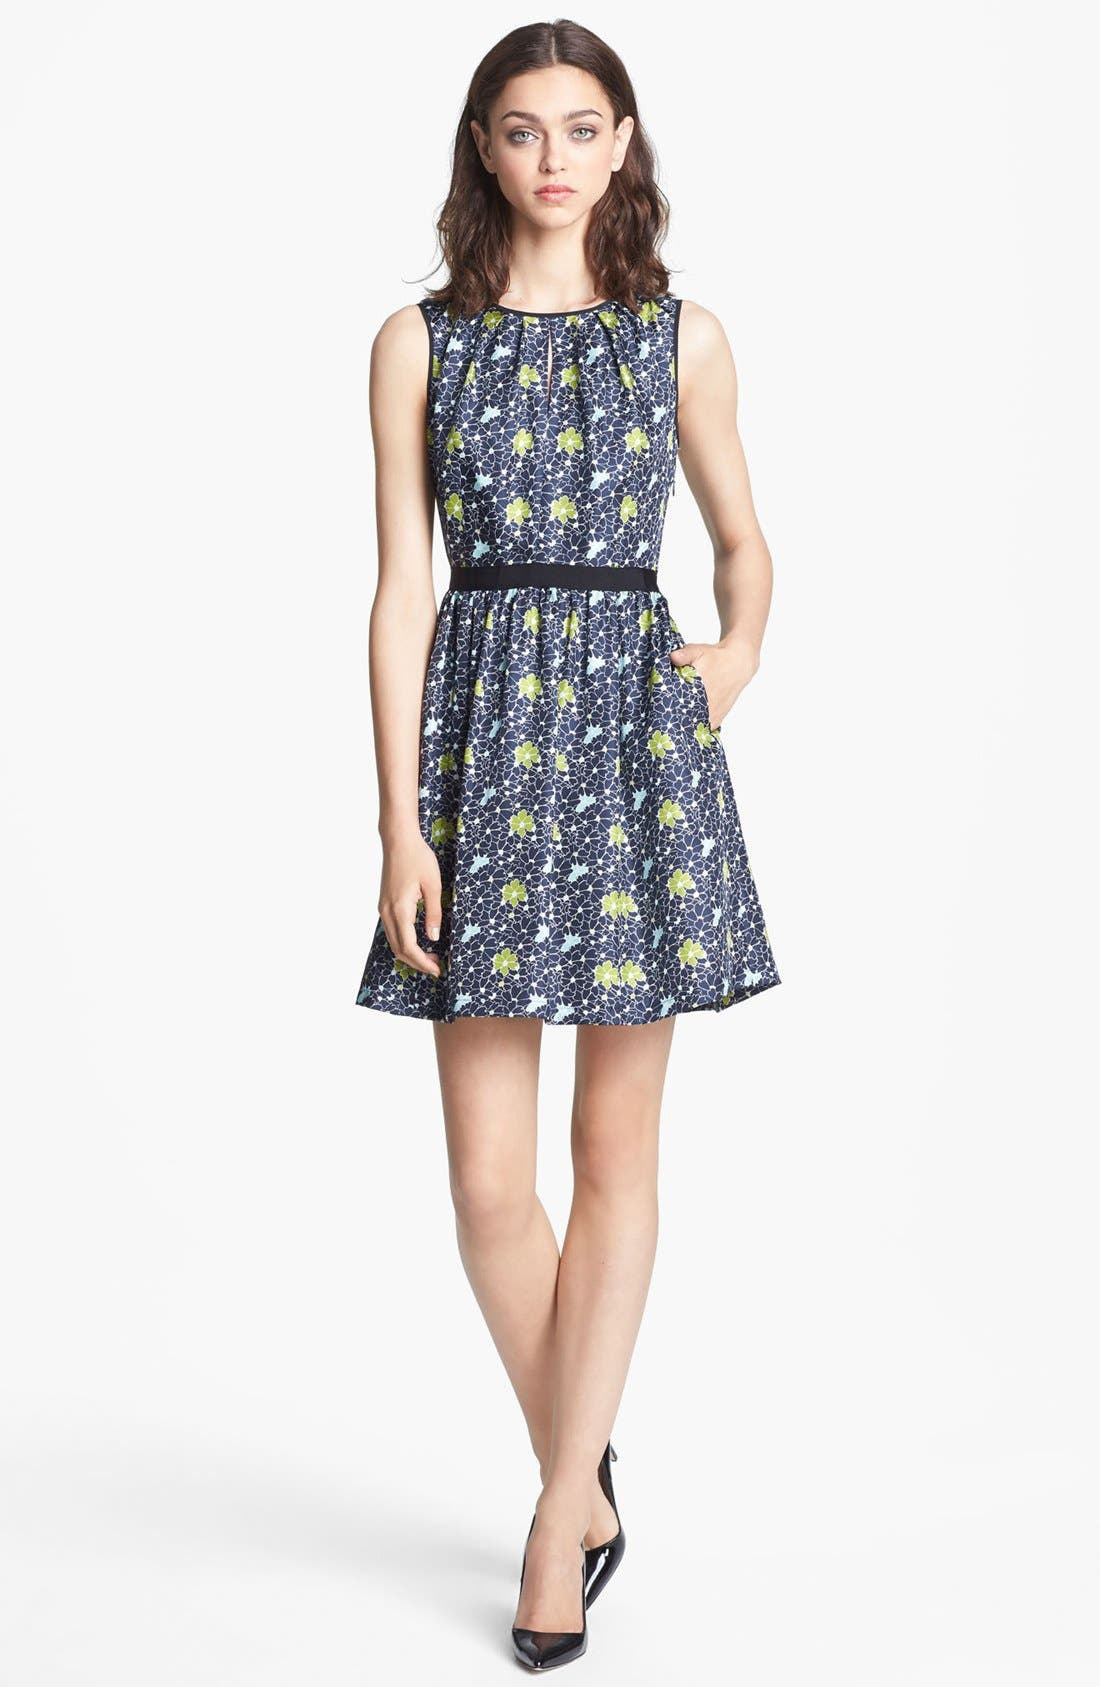 Alternate Image 1 Selected - Miss Wu Packed Floral Print Dress (Nordstrom Exclusive)